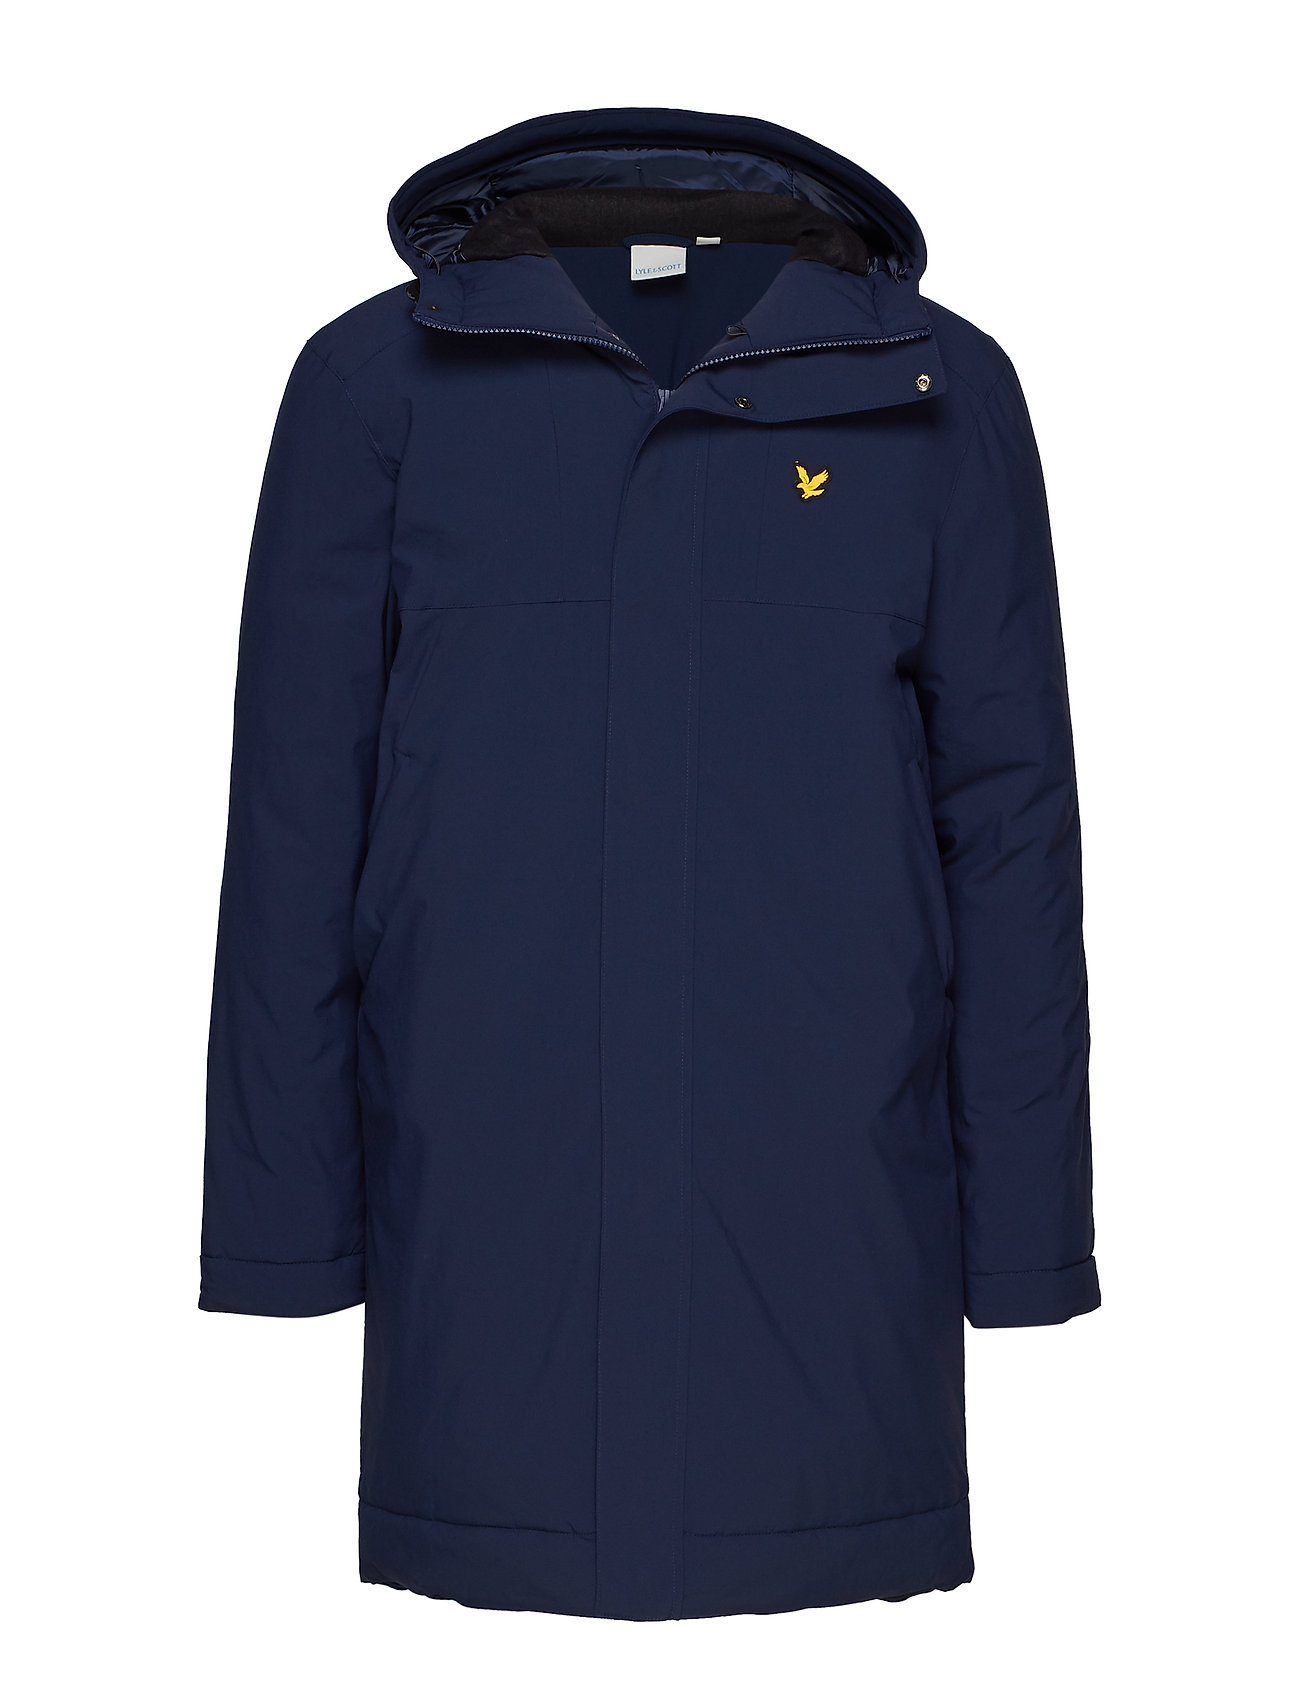 Lyle & Scott Manager Coat - NAVY